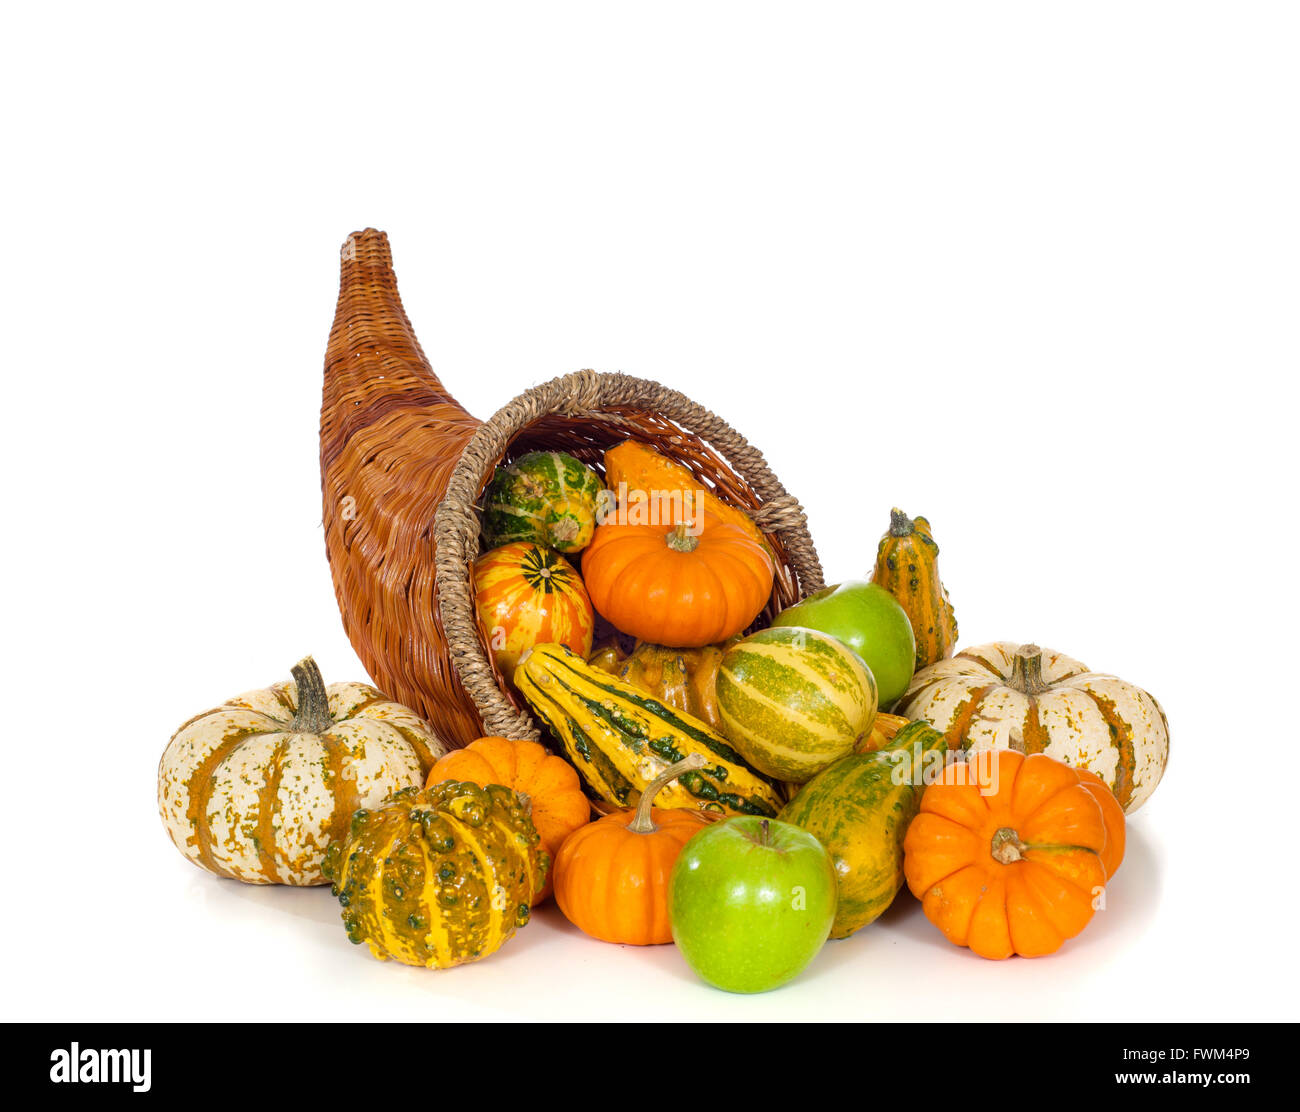 a fall or autumn conucopia on white background harvest horn of